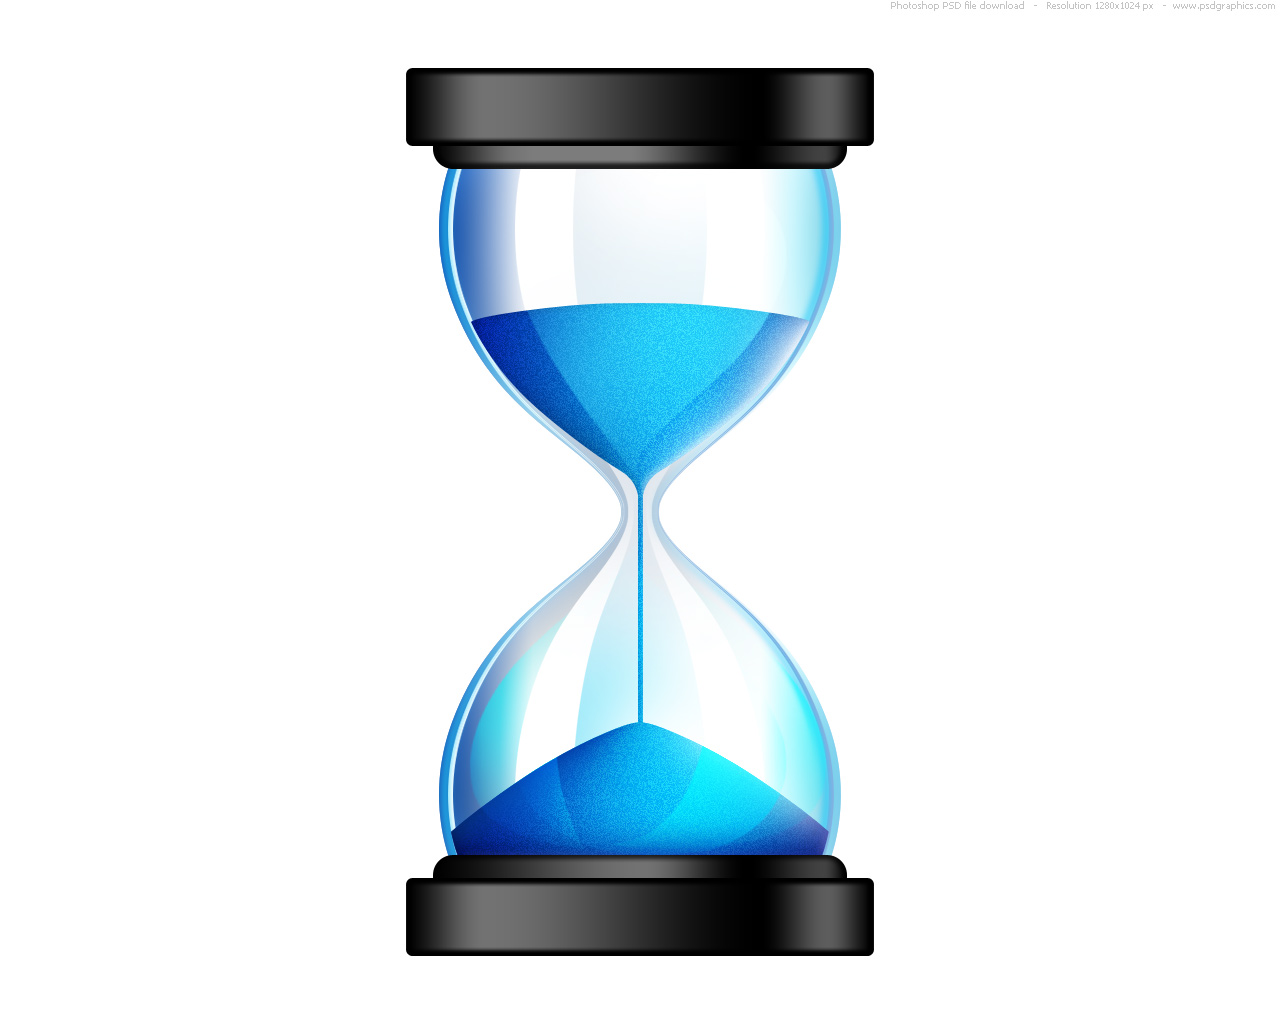 Unknown clipart limitation Clipart Computer Hourglass clipart free